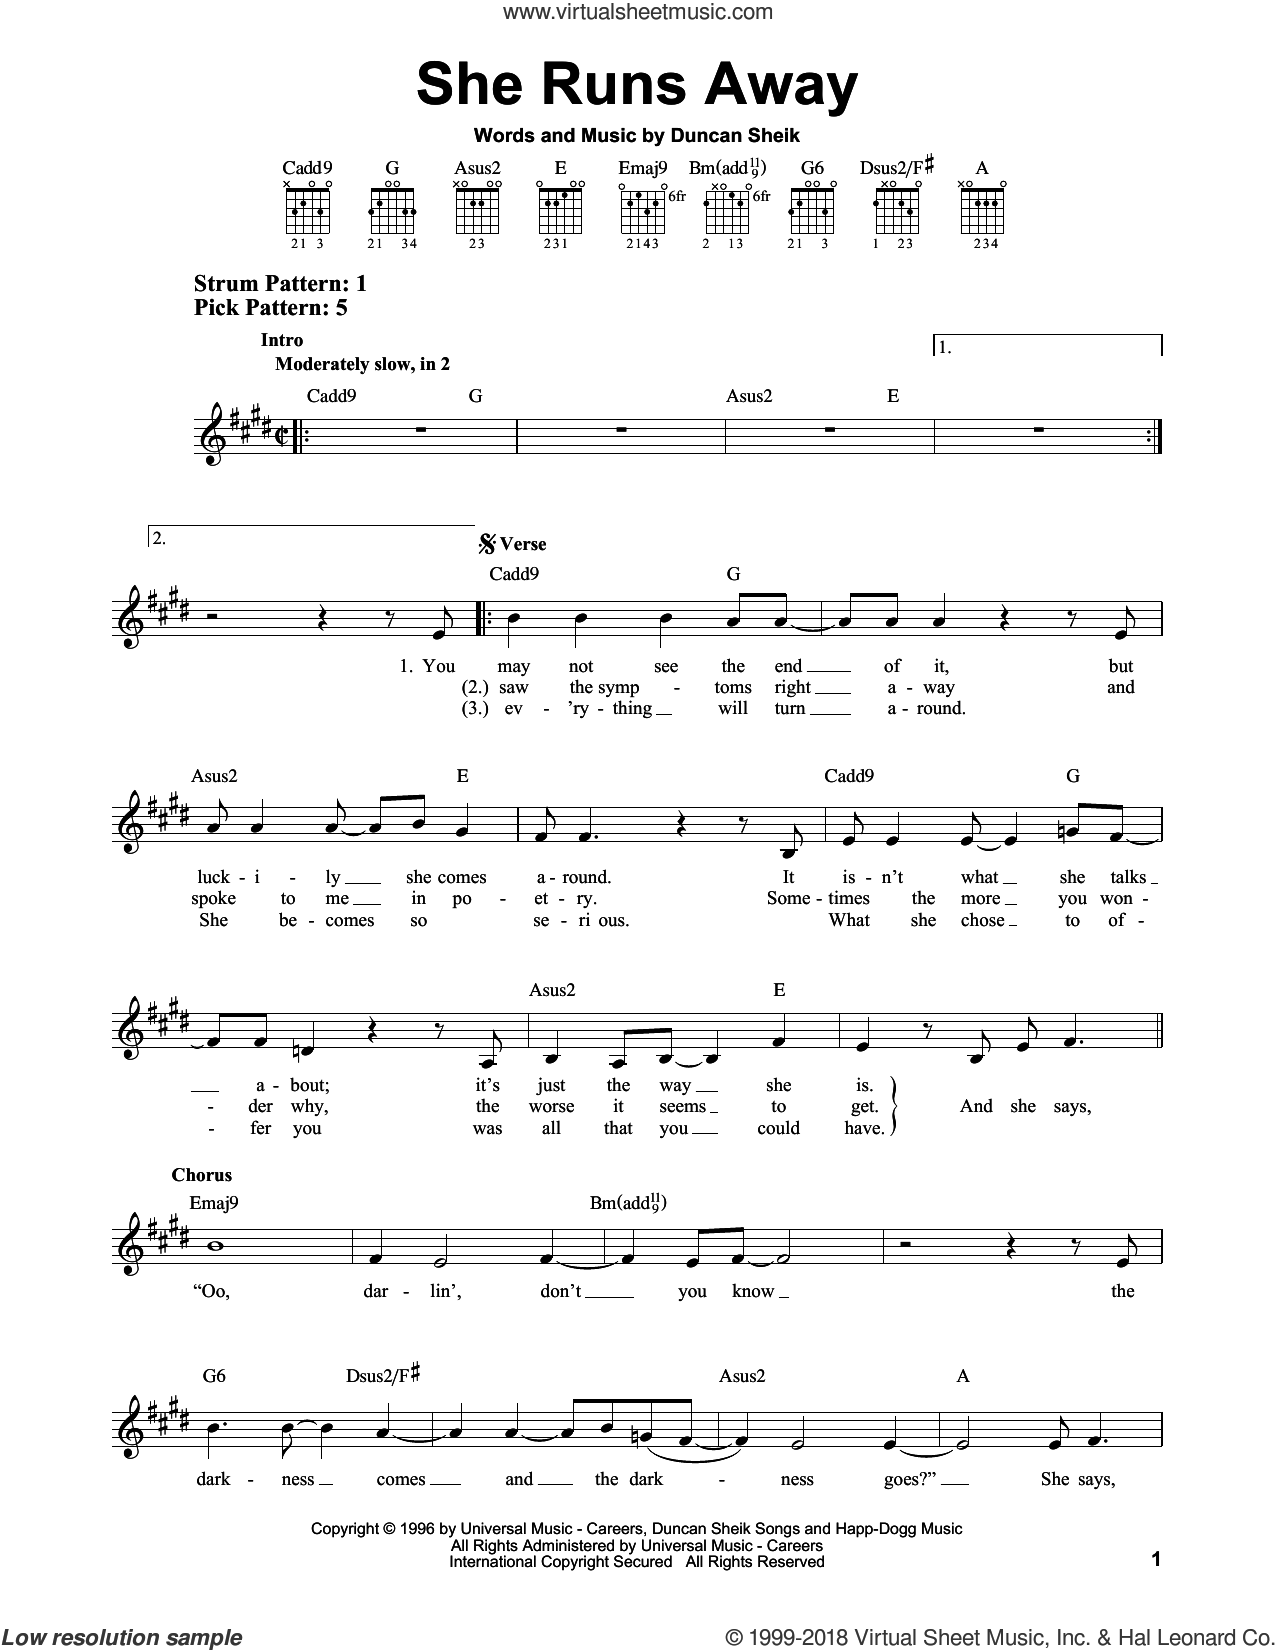 She Runs Away sheet music for guitar solo (chords) by Duncan Sheik. Score Image Preview.